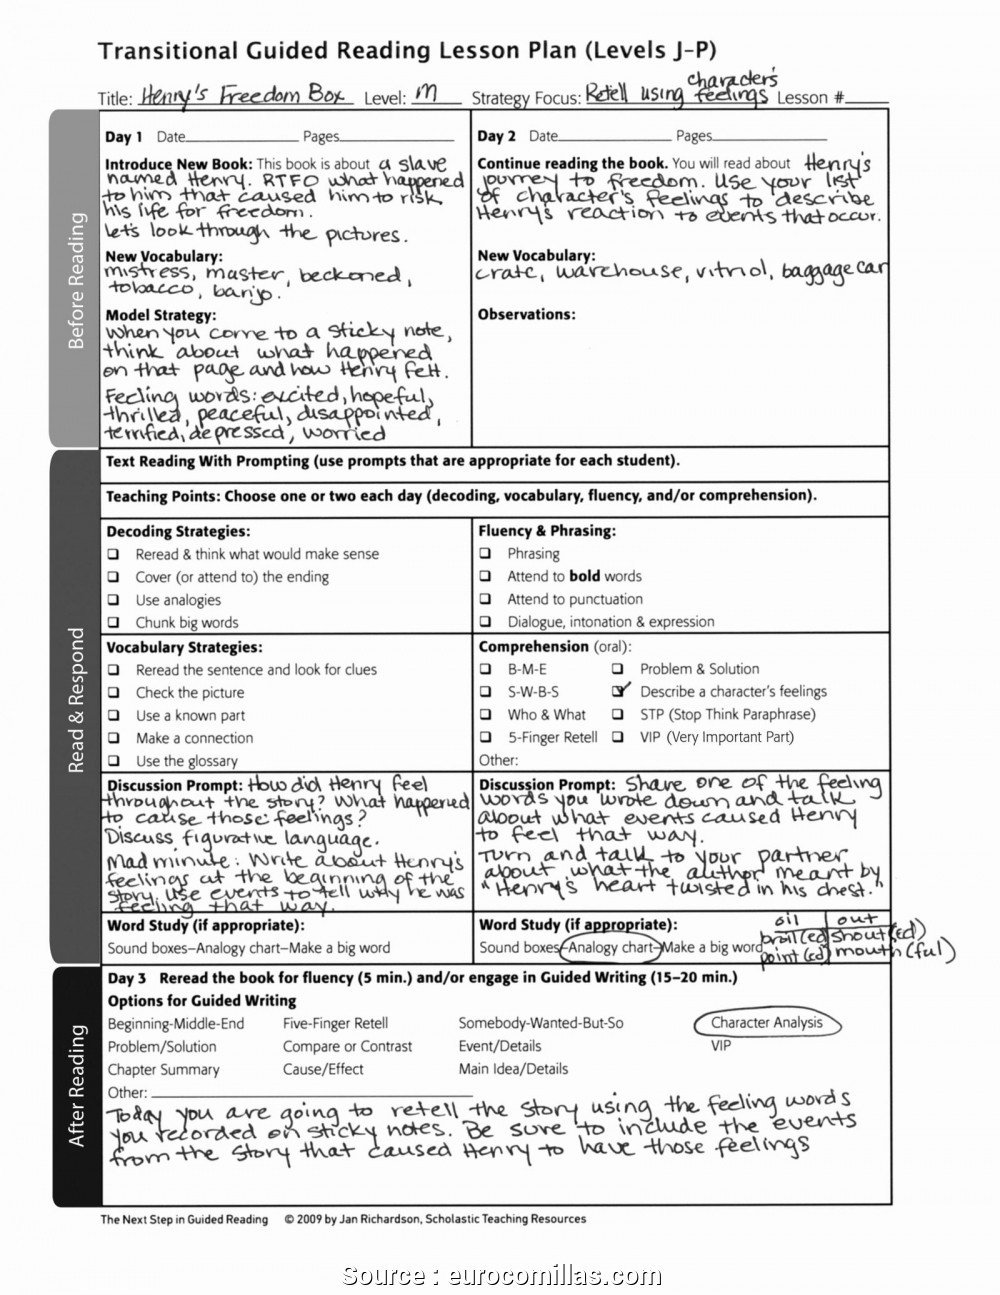 Special Education Lesson Plan Template 5 New Special Education Lesson Plans Reading